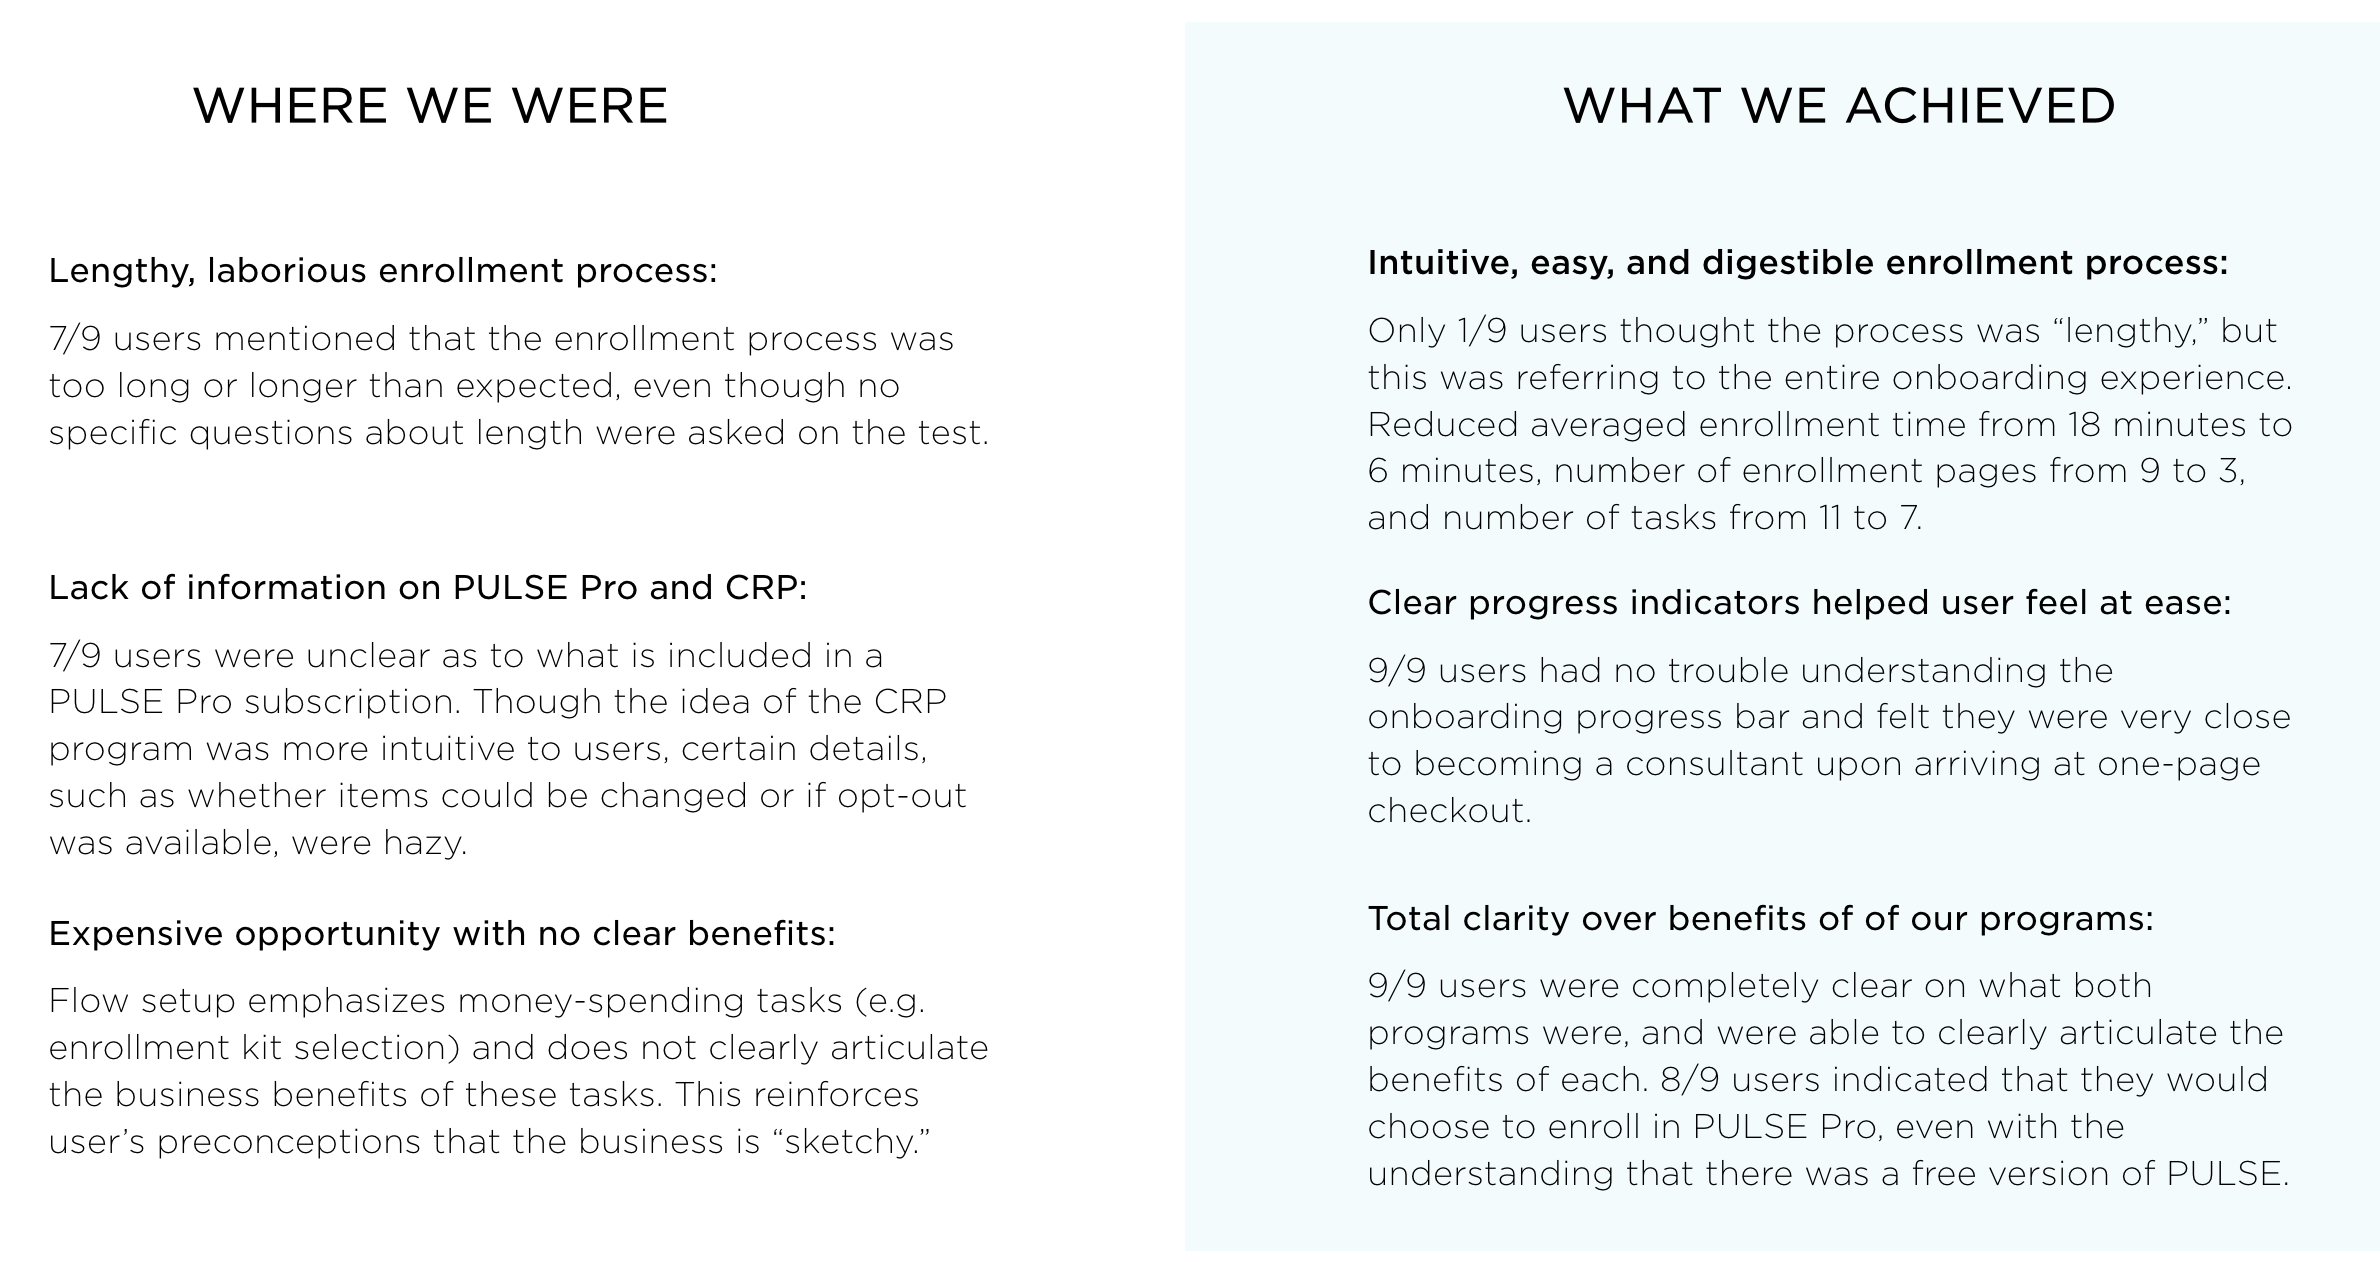 A sampling of our key successes